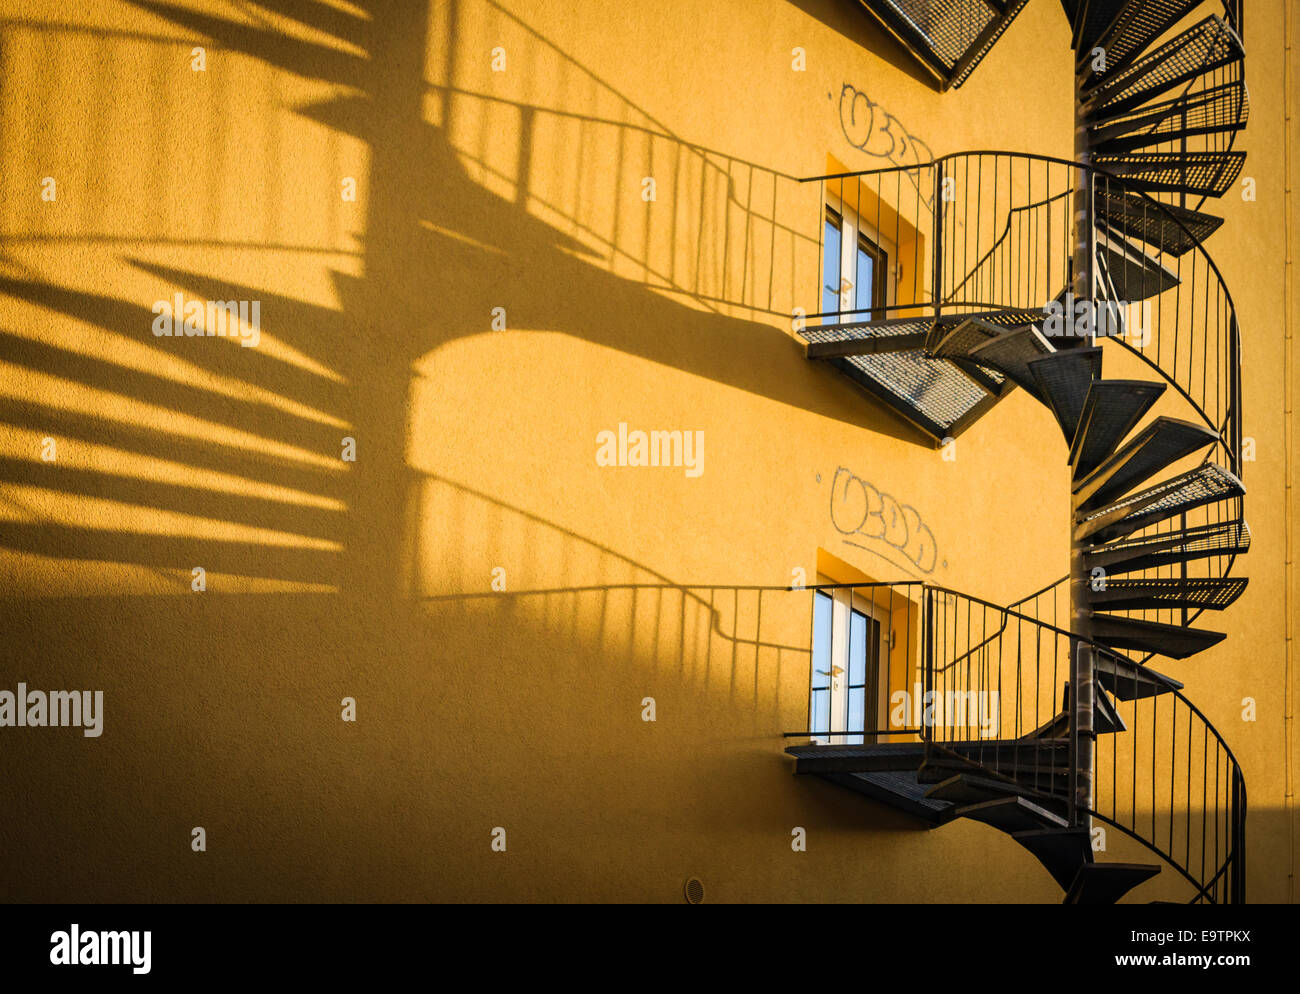 Stairs Fire Escape Stock Photos & Stairs Fire Escape Stock Images ...